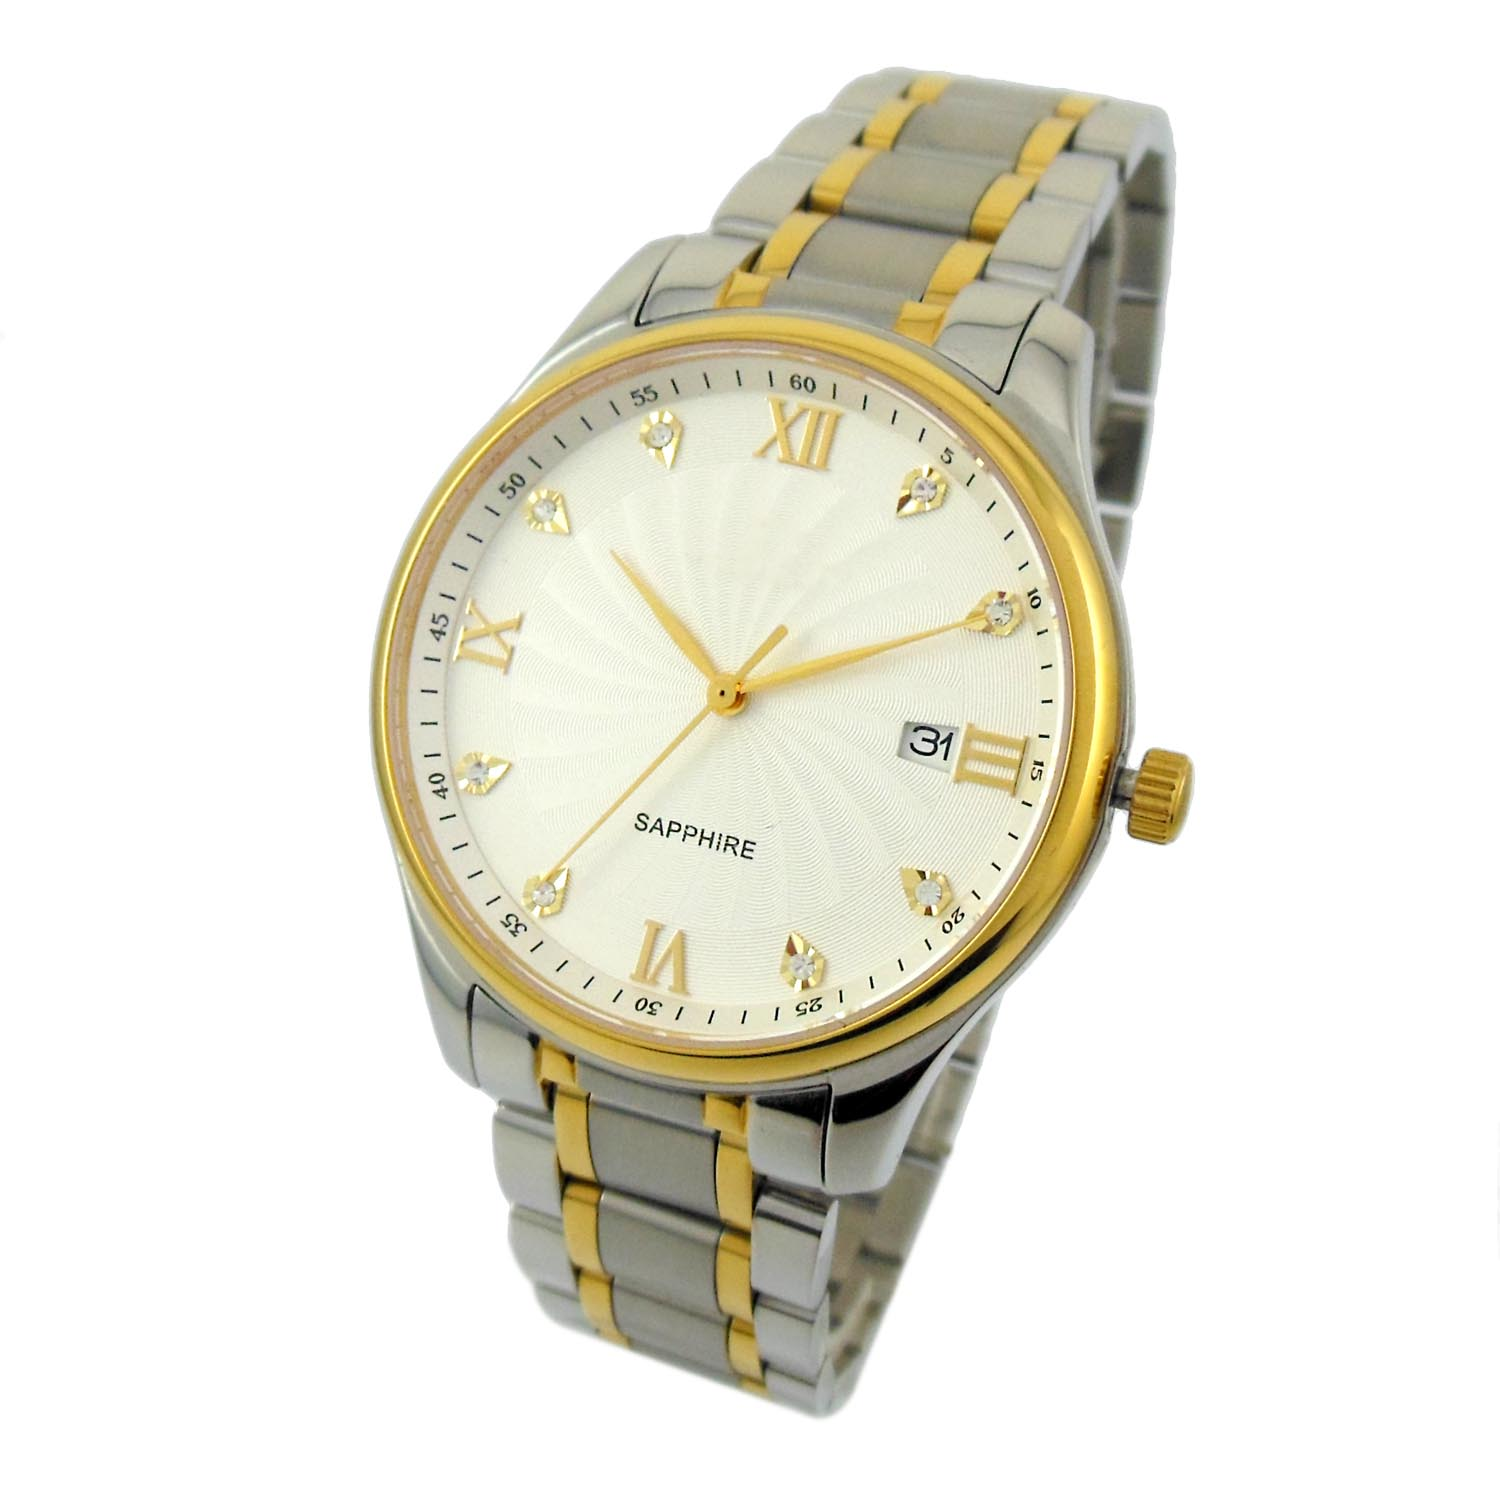 Stainless Steel Swiss Movt Men Watch